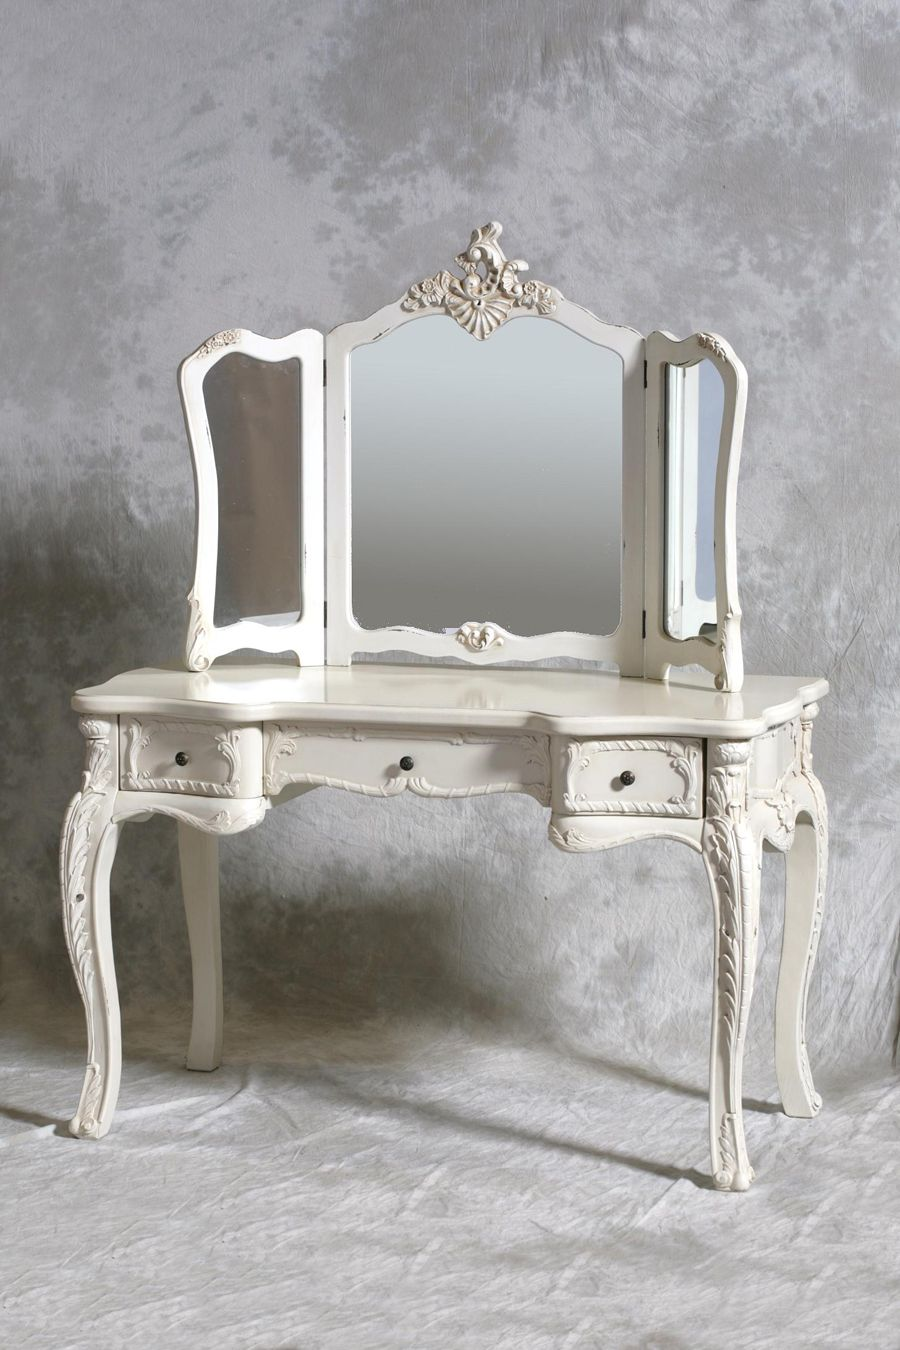 Furniture, French Style Antique And Vintage Makeup Vanity Table With 3  Folding Mirror Set And 3 Drawer Painted With White Color Plus Carving  Wooden Legs ... - Vintage Vanity Table Accessories Apartment Living Pinterest